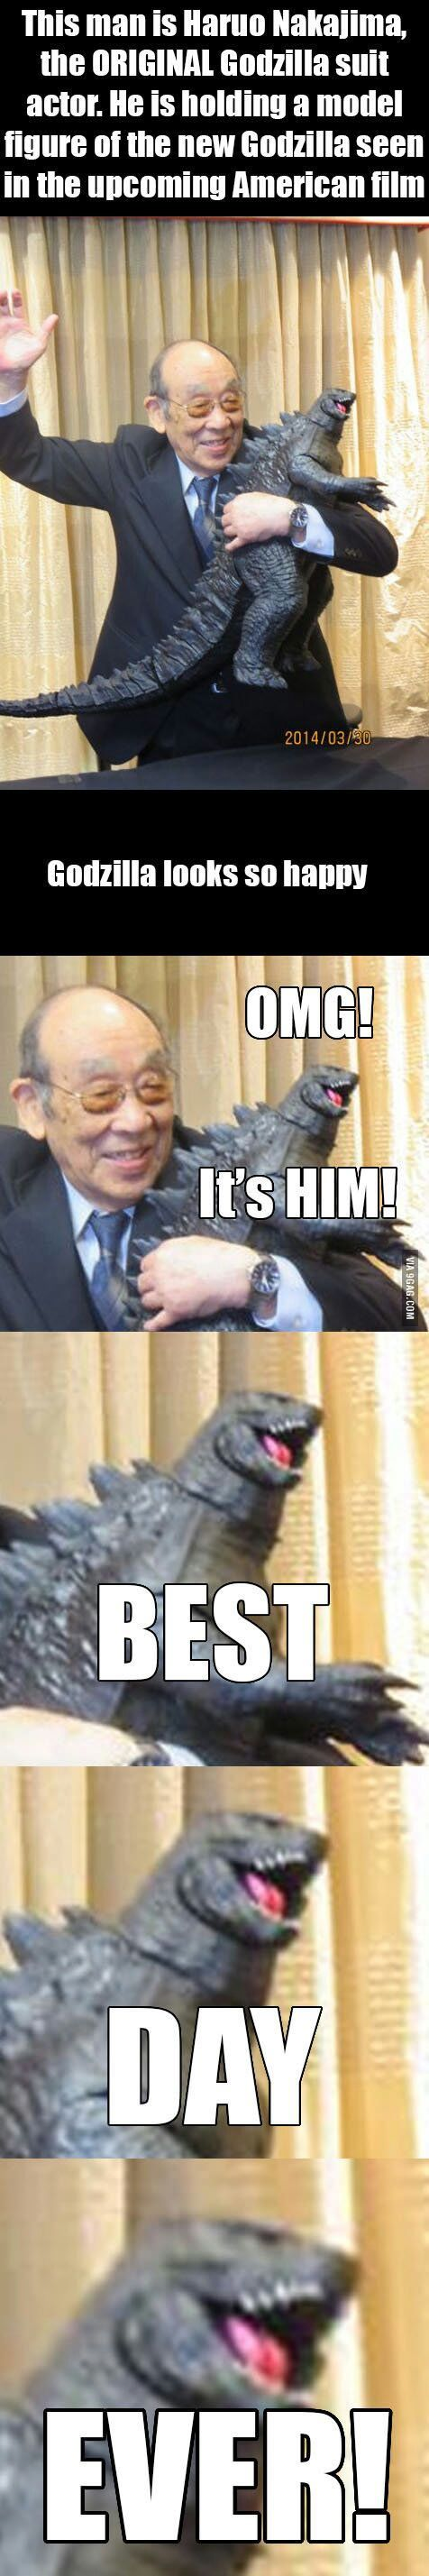 Haruo Nakajima~best Godzilla man (some days it's not about the CG, it's about the original)